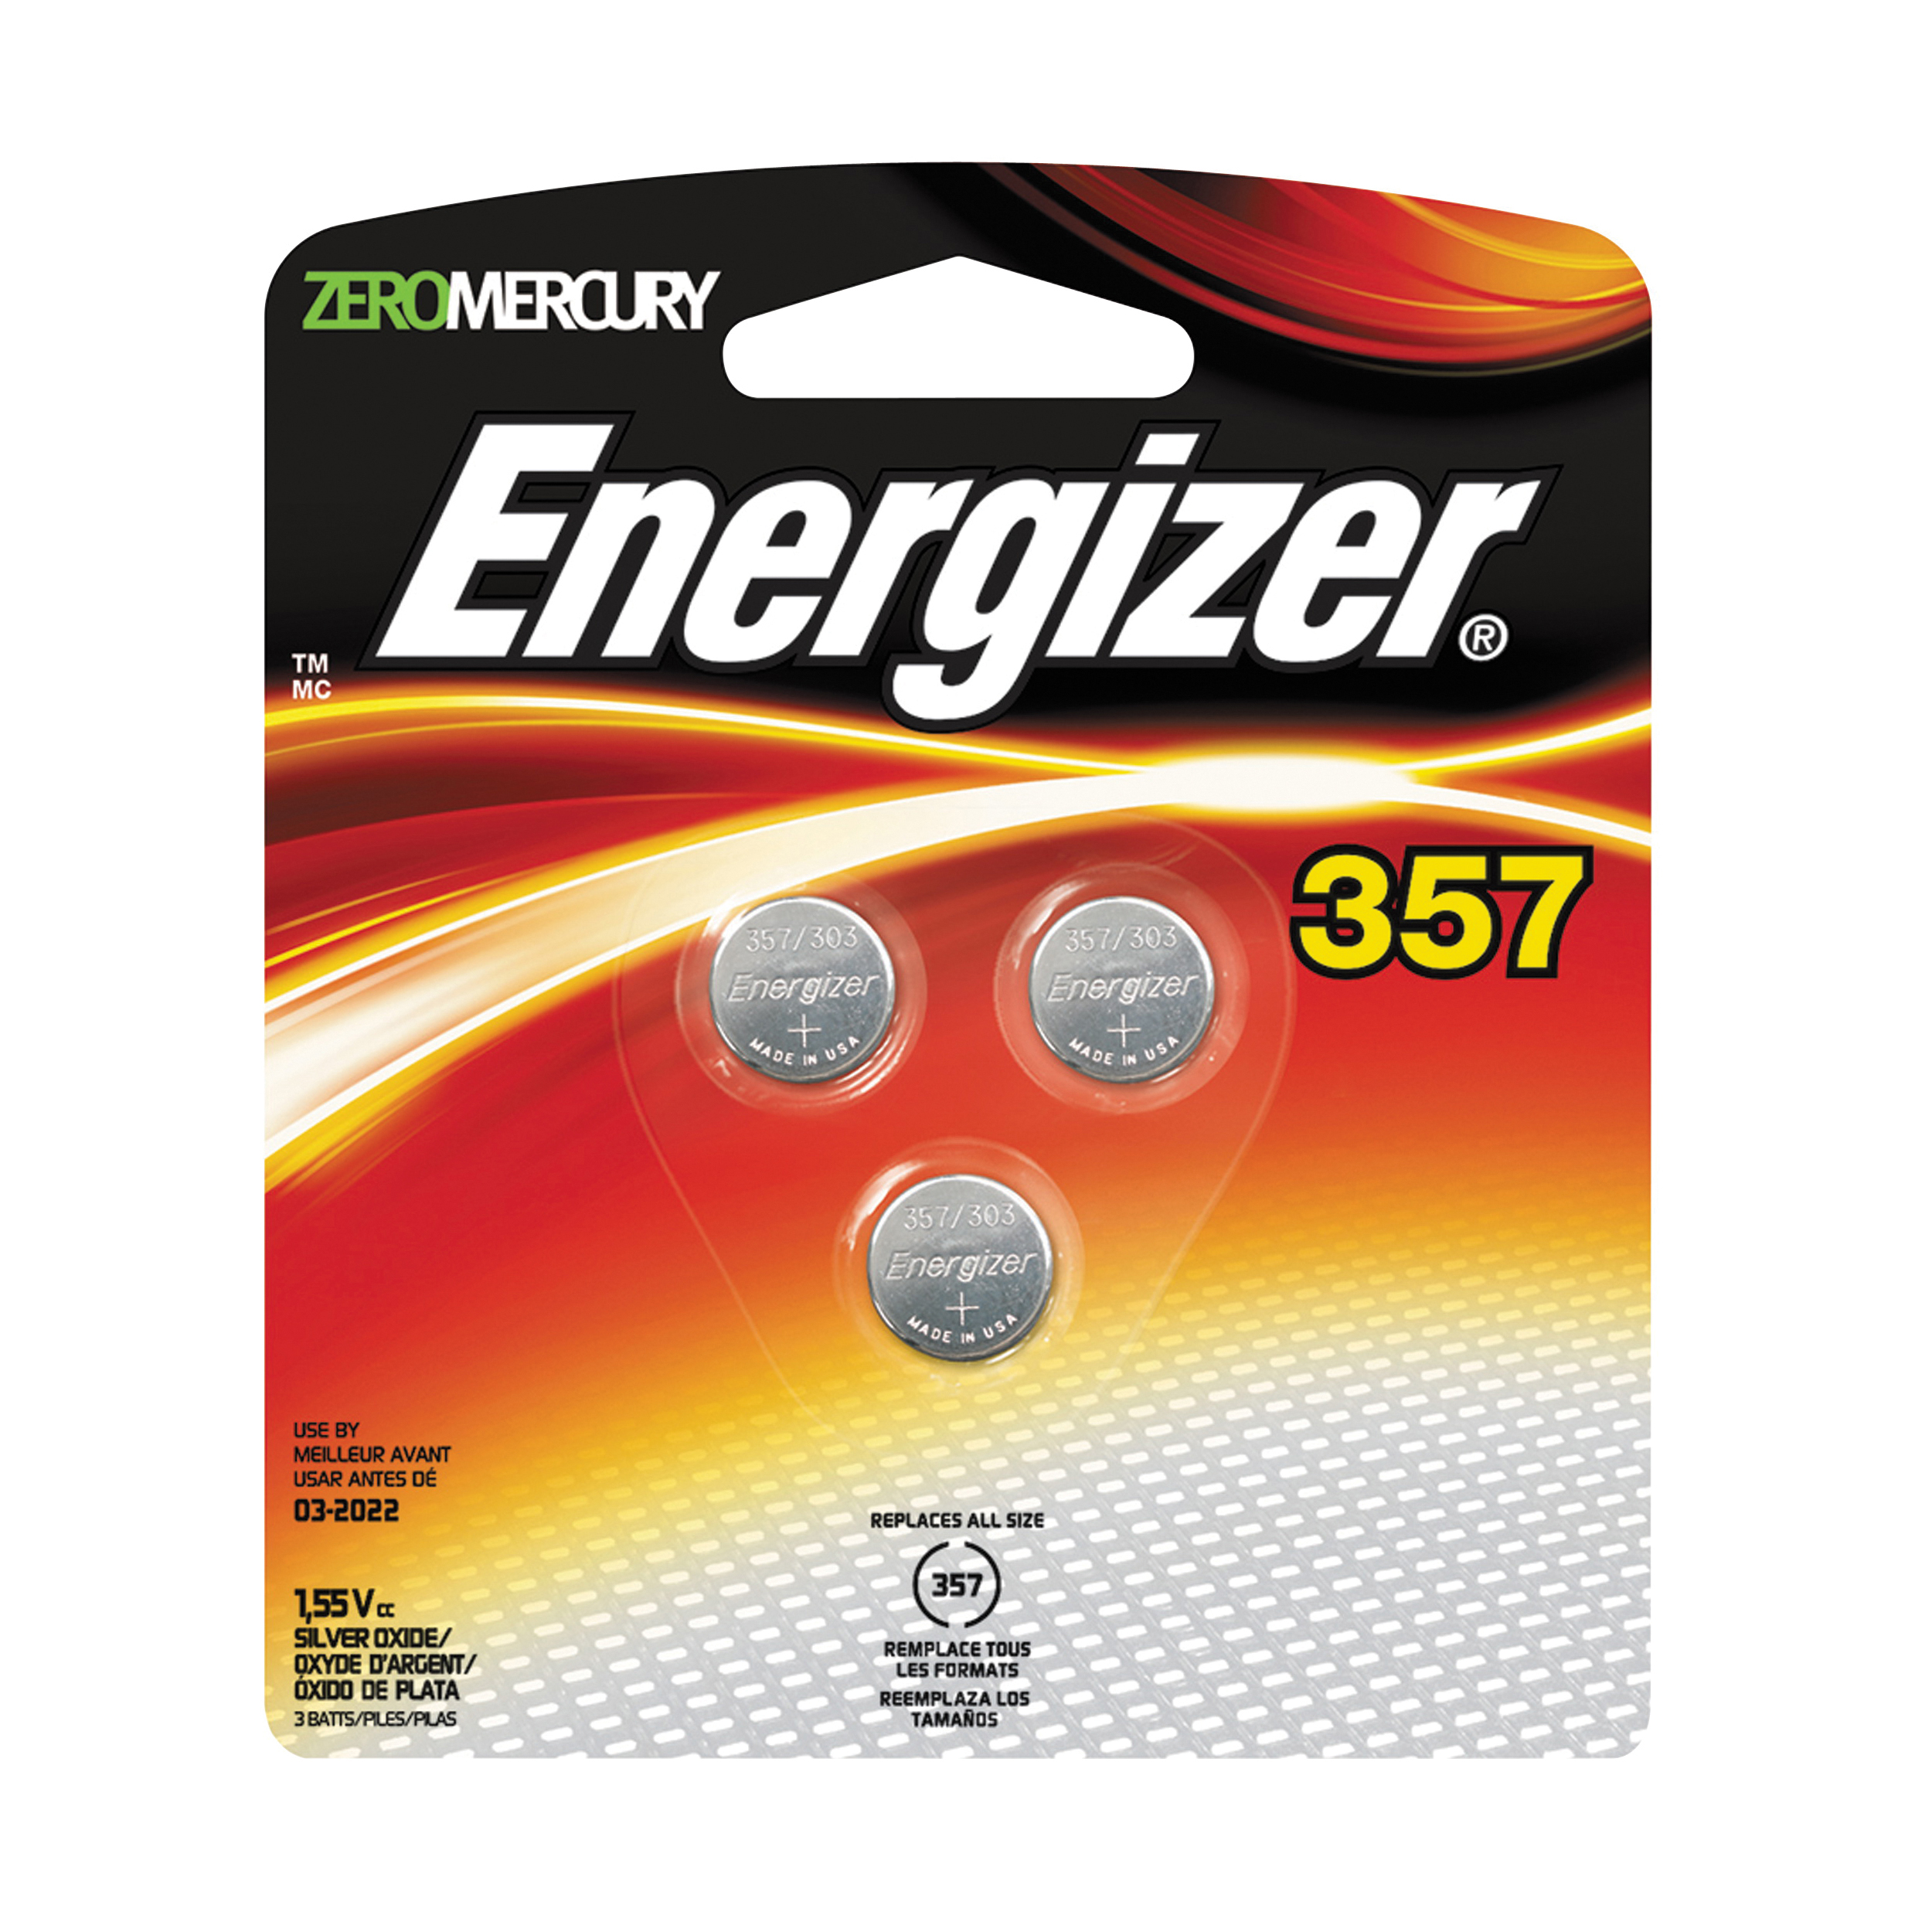 Picture of Energizer 357BPZ-3 Coin Cell Battery, 1.5 V Battery, 150 mAh, 357 Battery, Silver Oxide